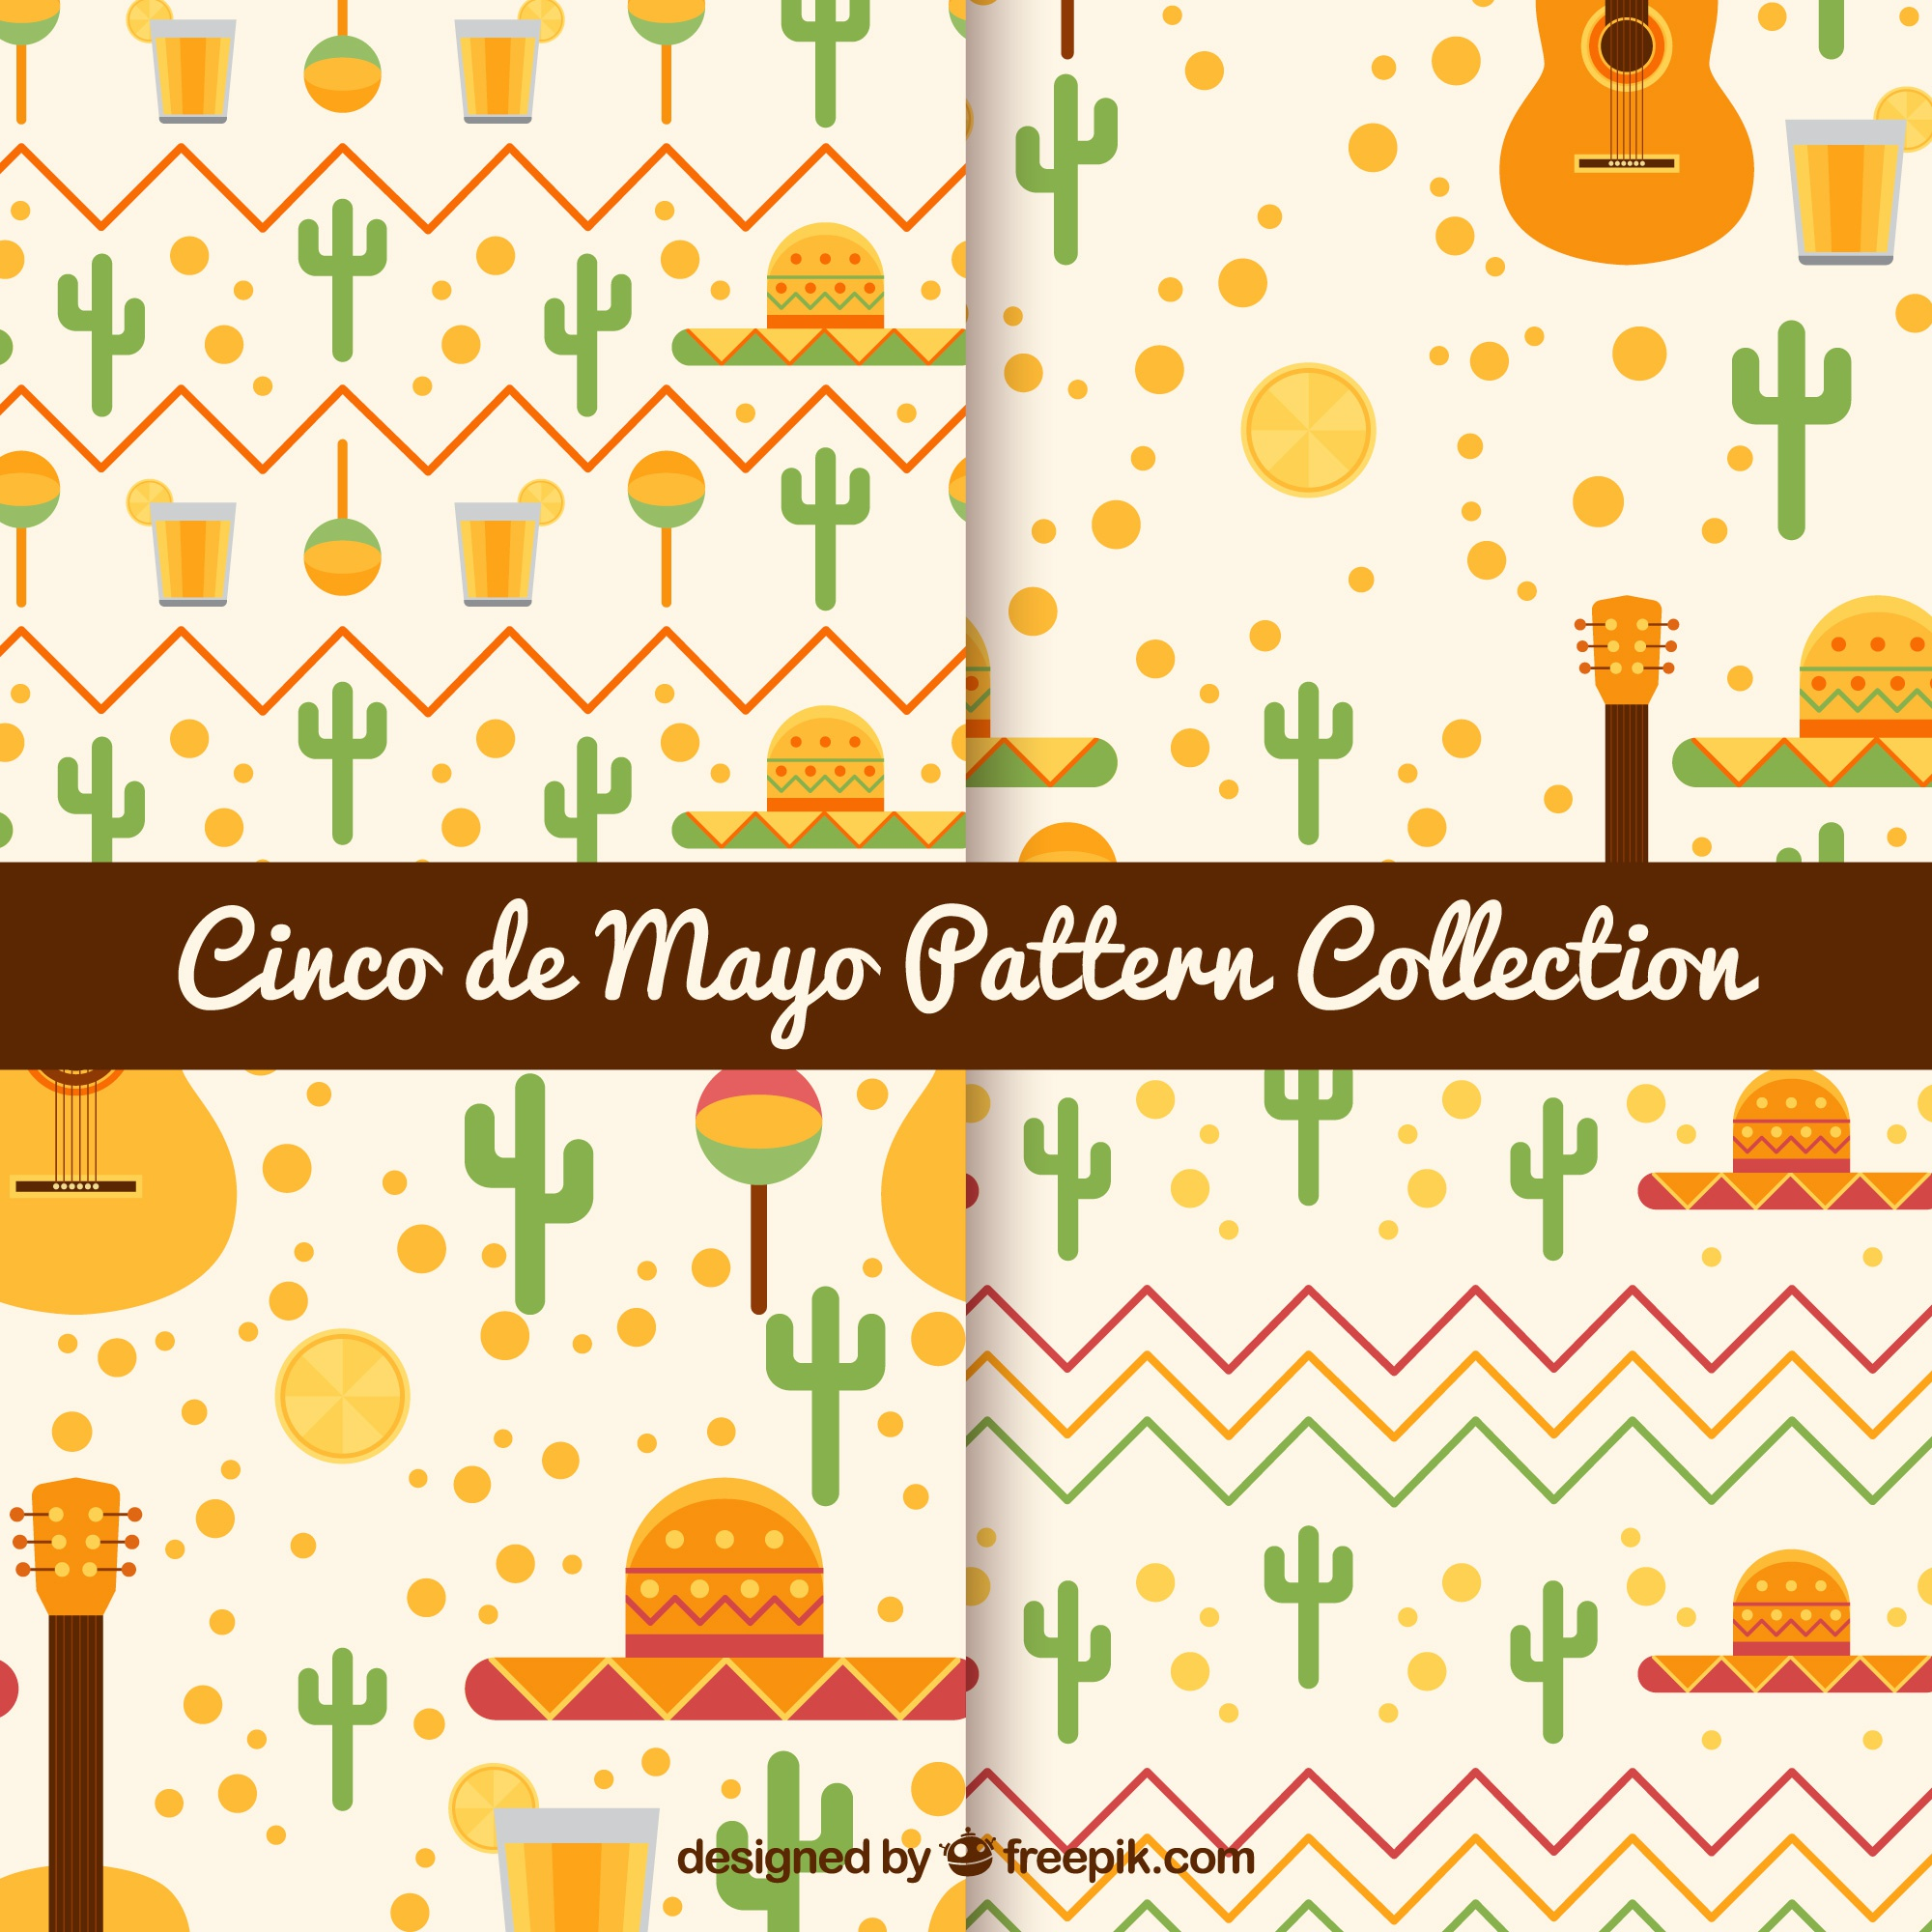 Cinco de mayo patterns with flat traditional items